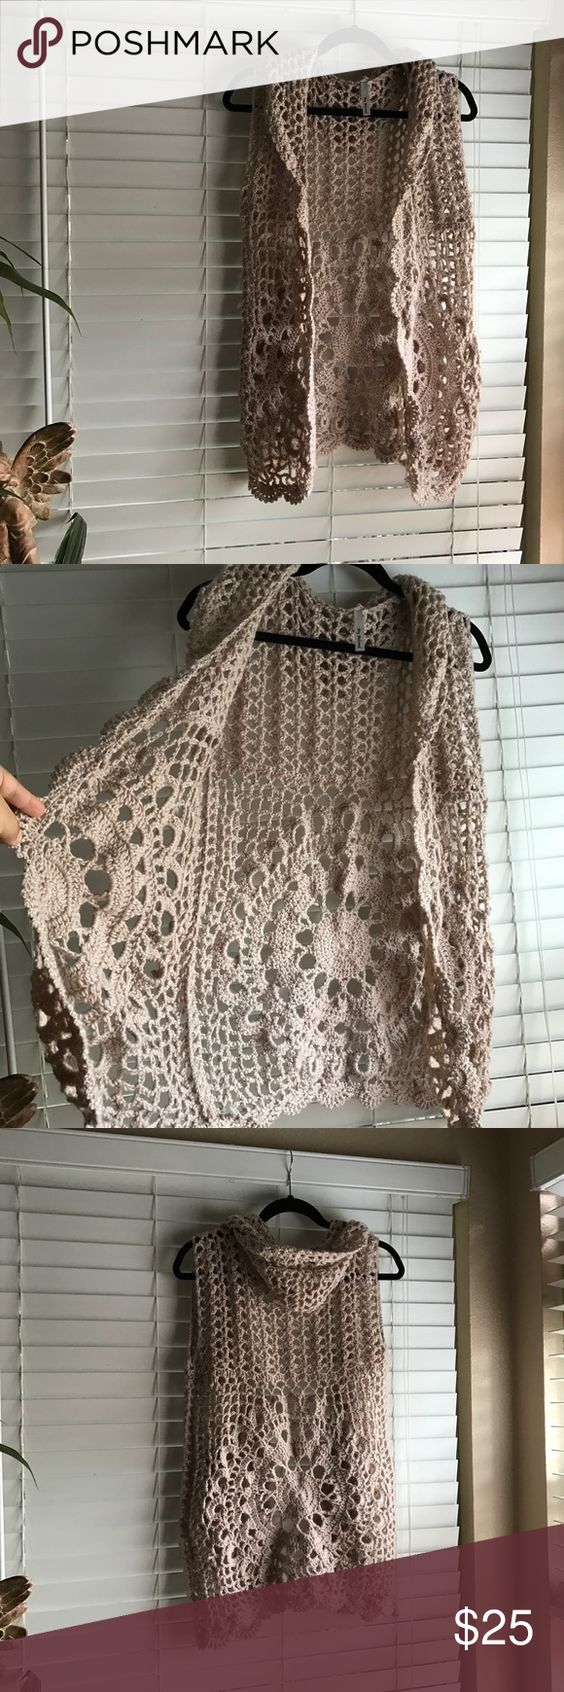 Crochet vest w/hood New without tags. Size small my beloved Jackets & Coats Vests